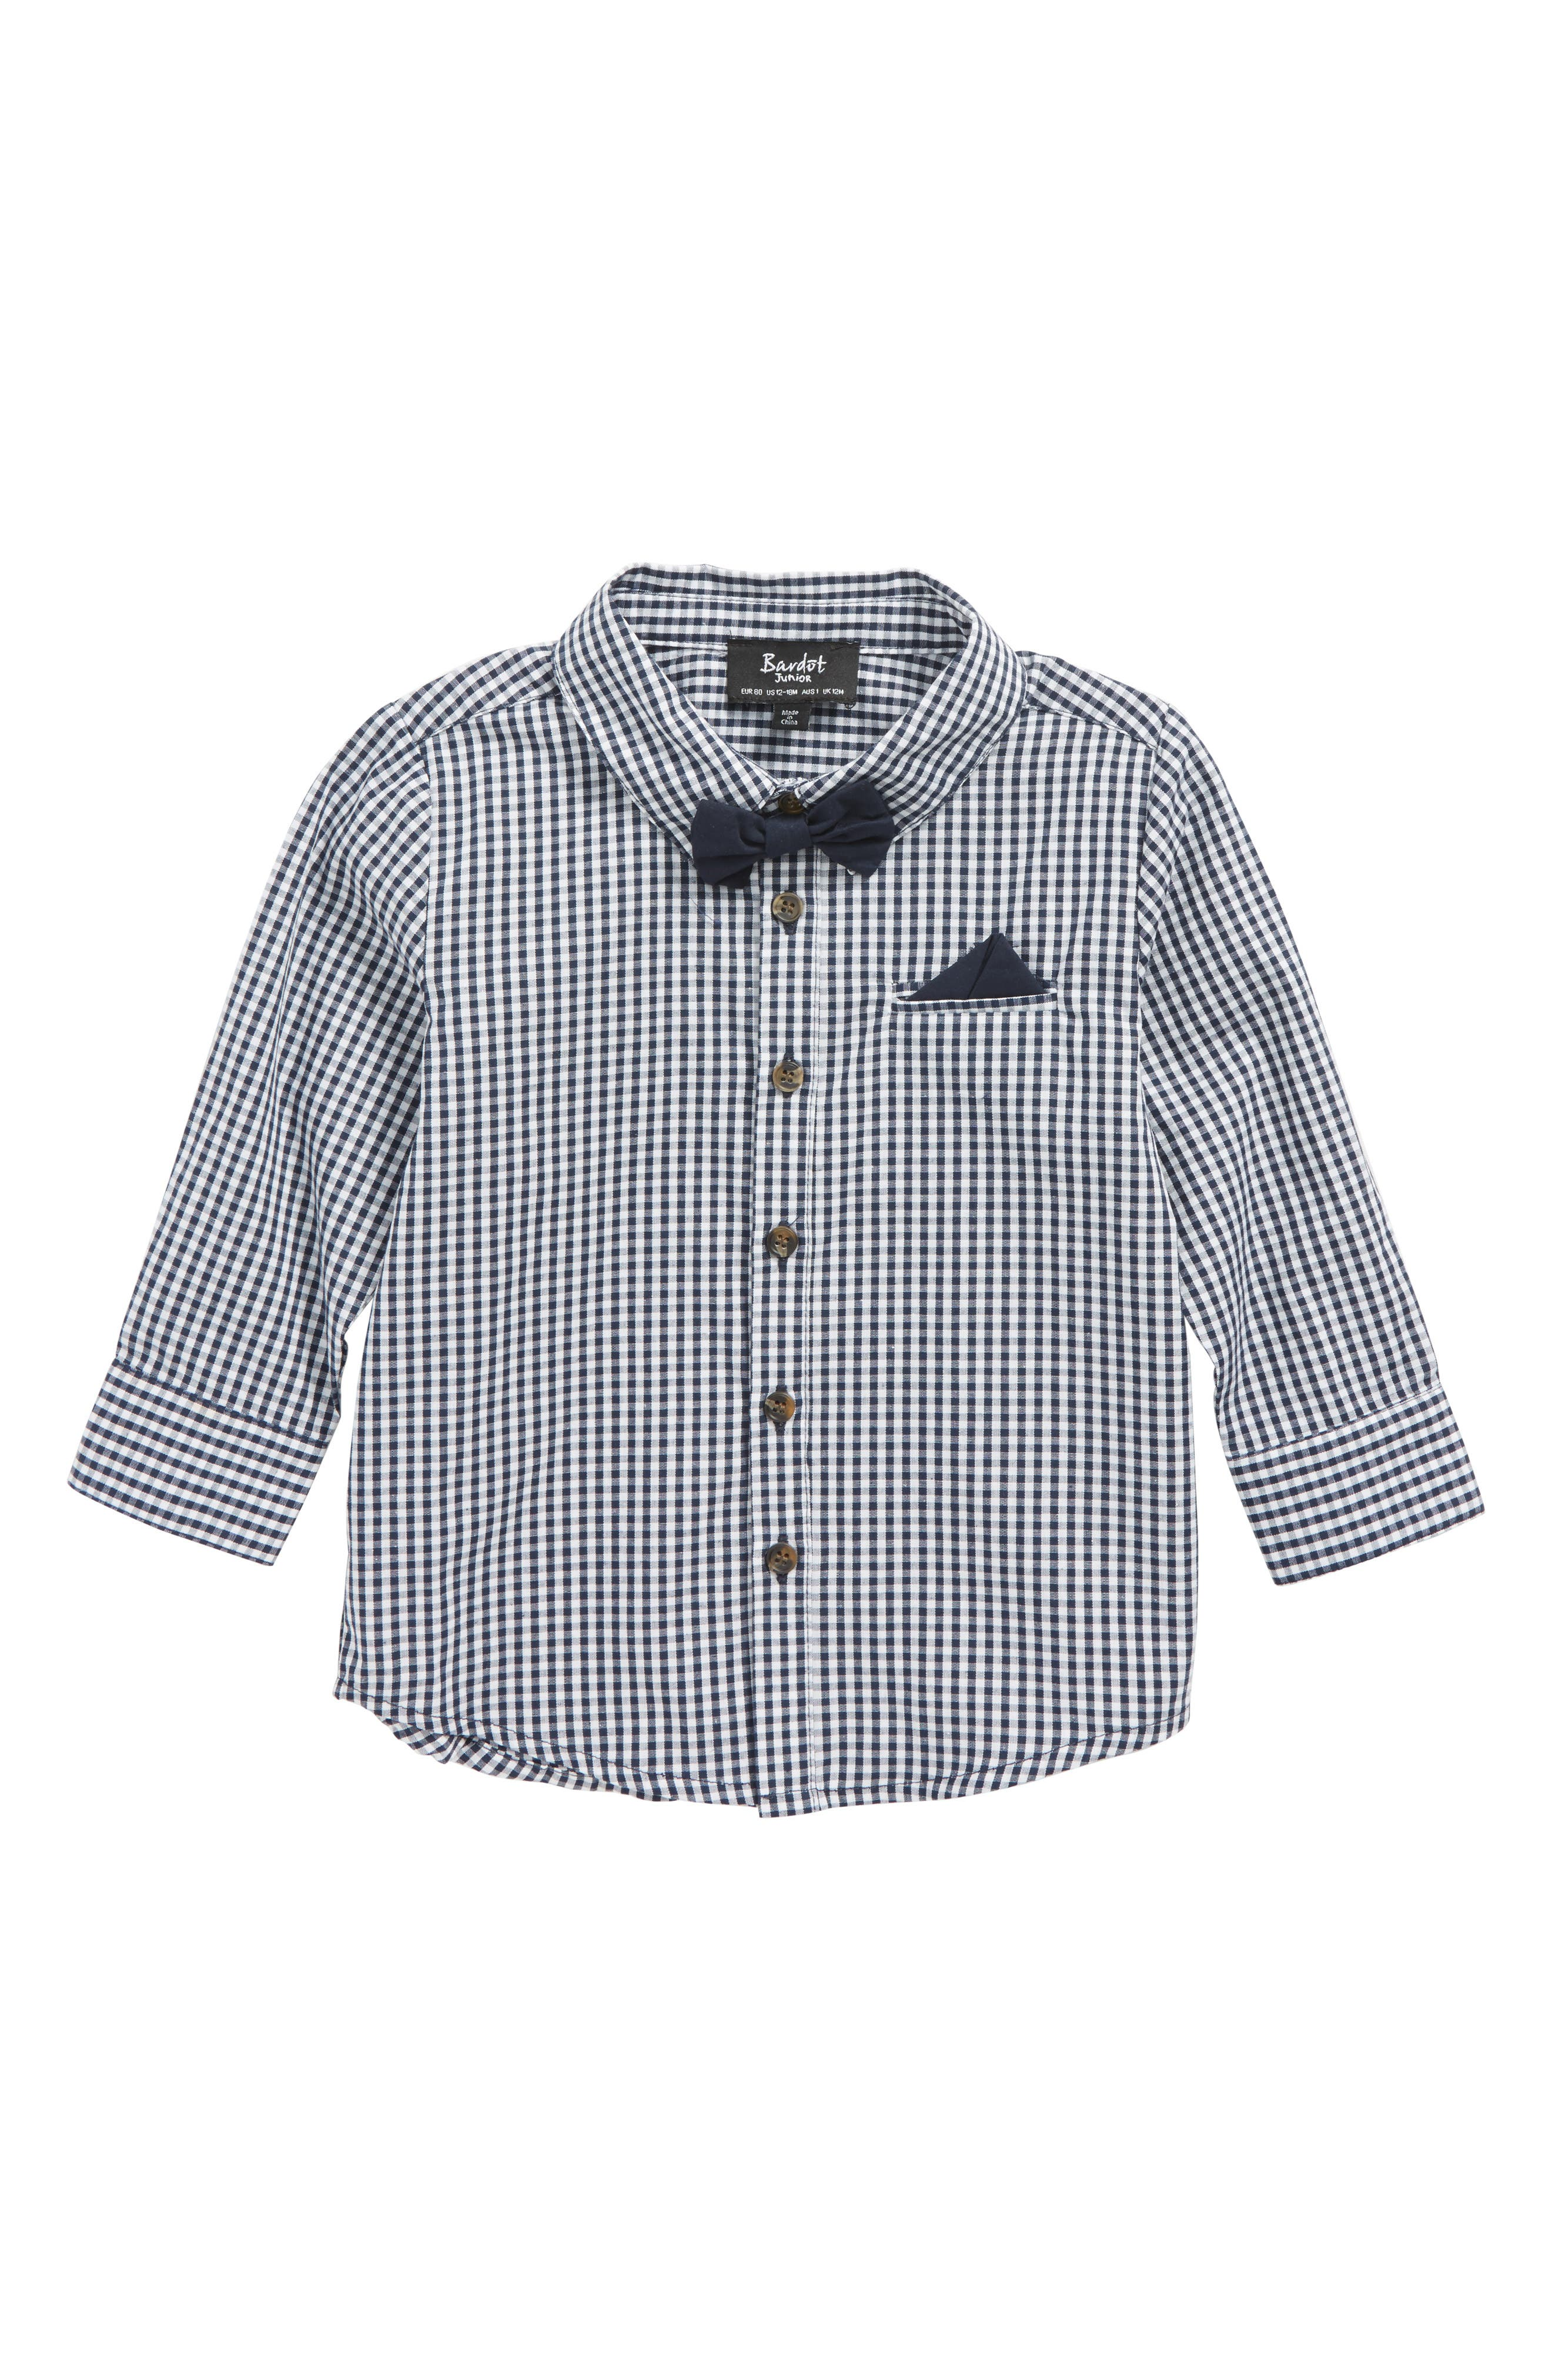 Bardot Junior Gingham Checks Shirt (Baby Boys & Toddler Boys)